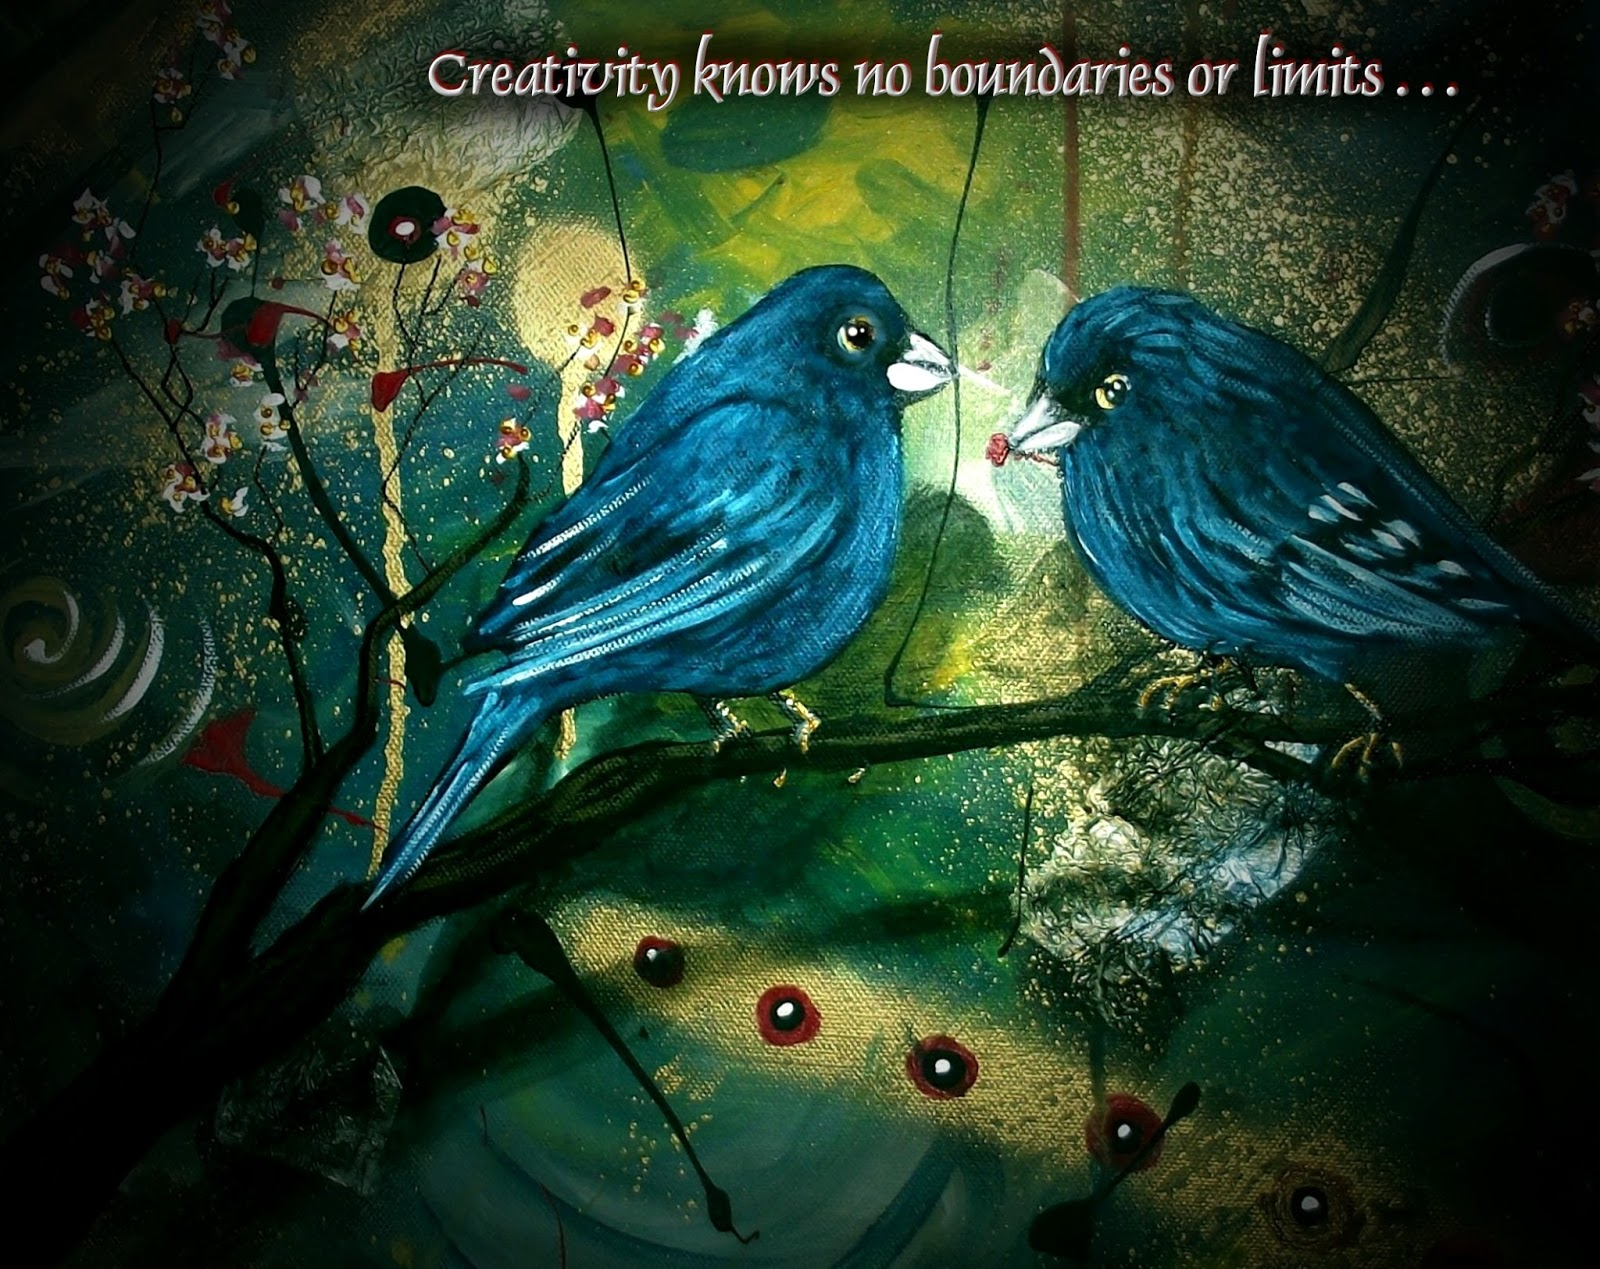 Blue Birds Images